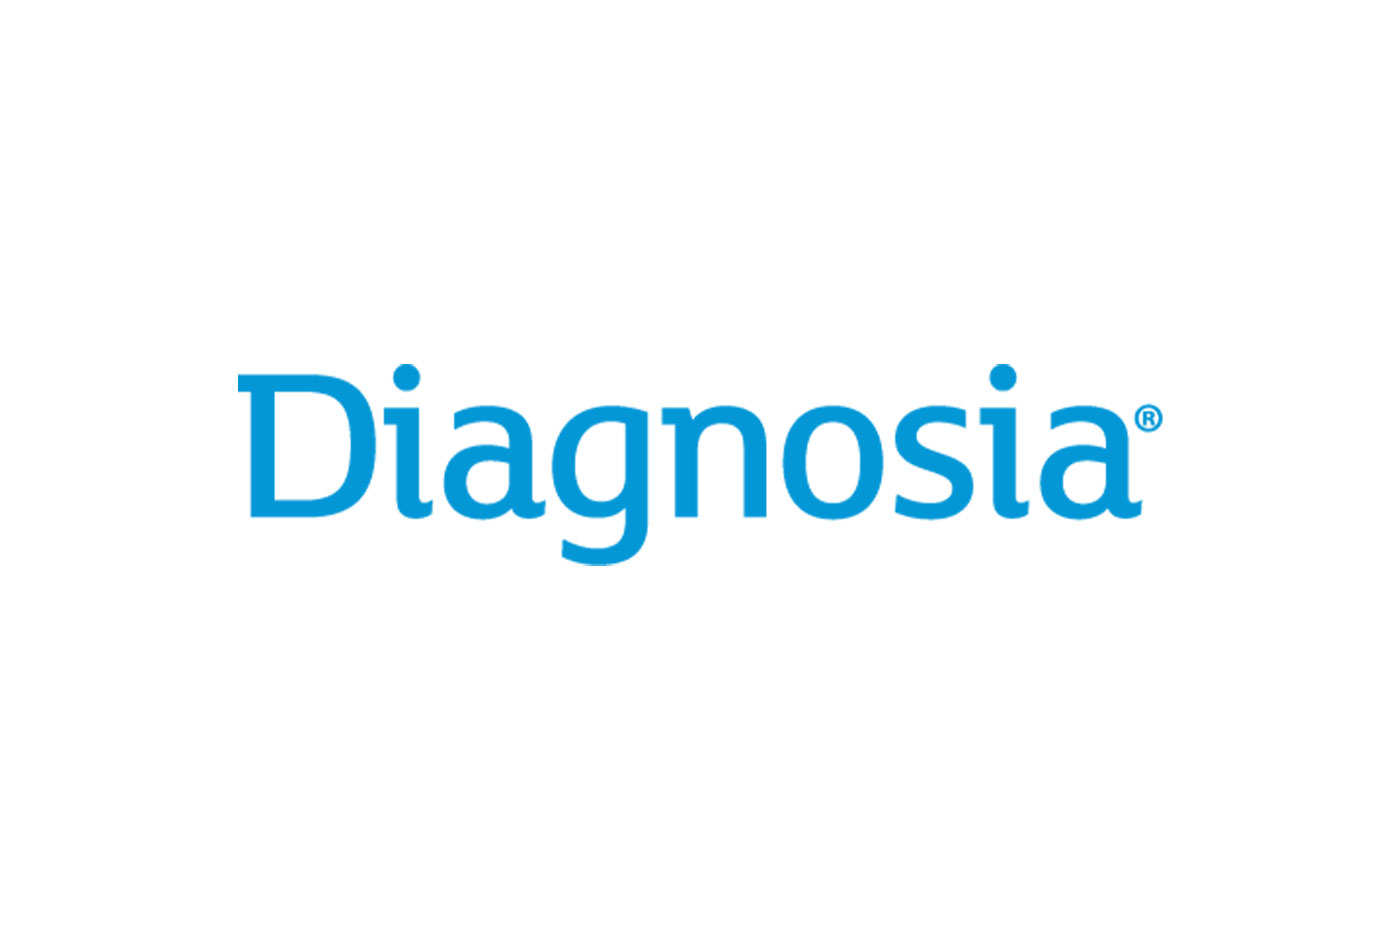 Diagnosia